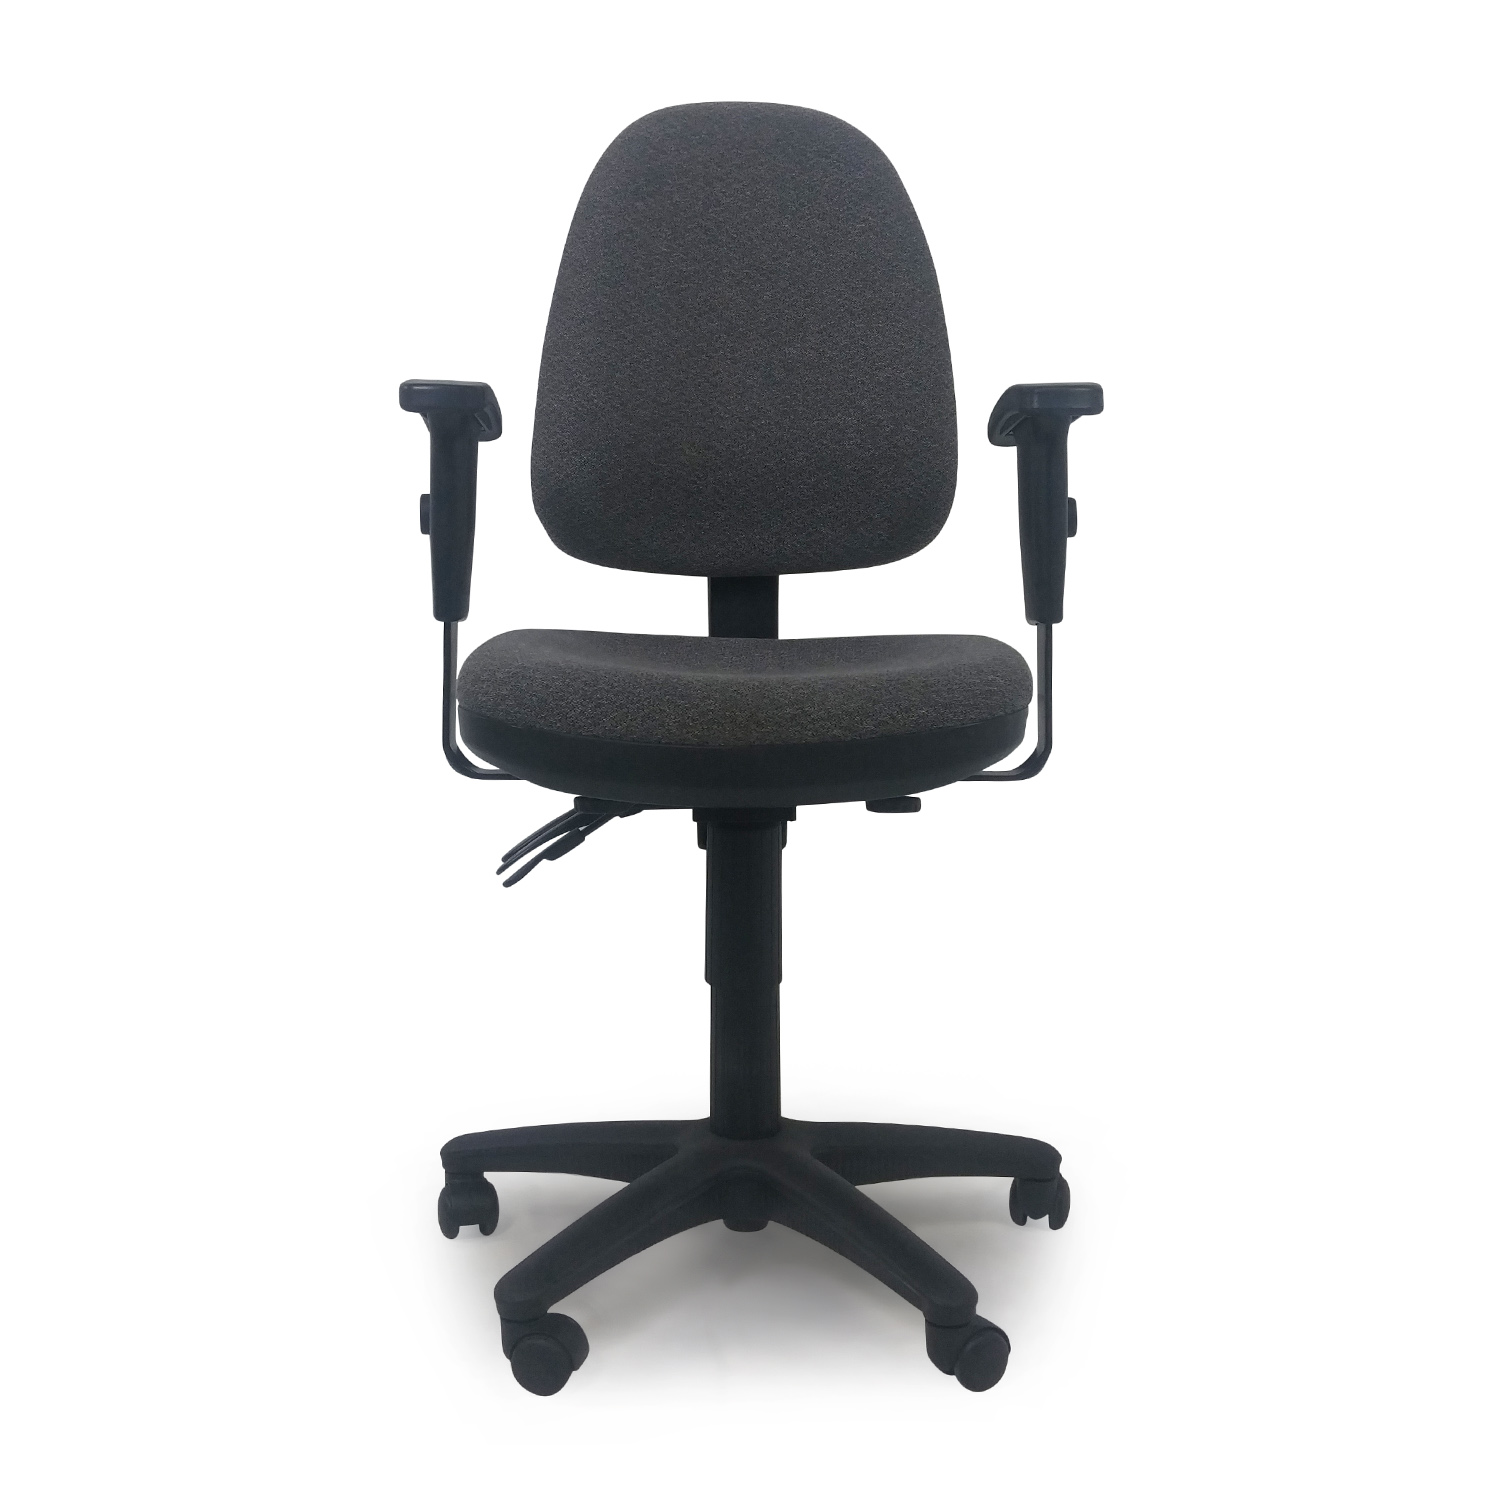 Ergonomic Office Chair Home Chairs